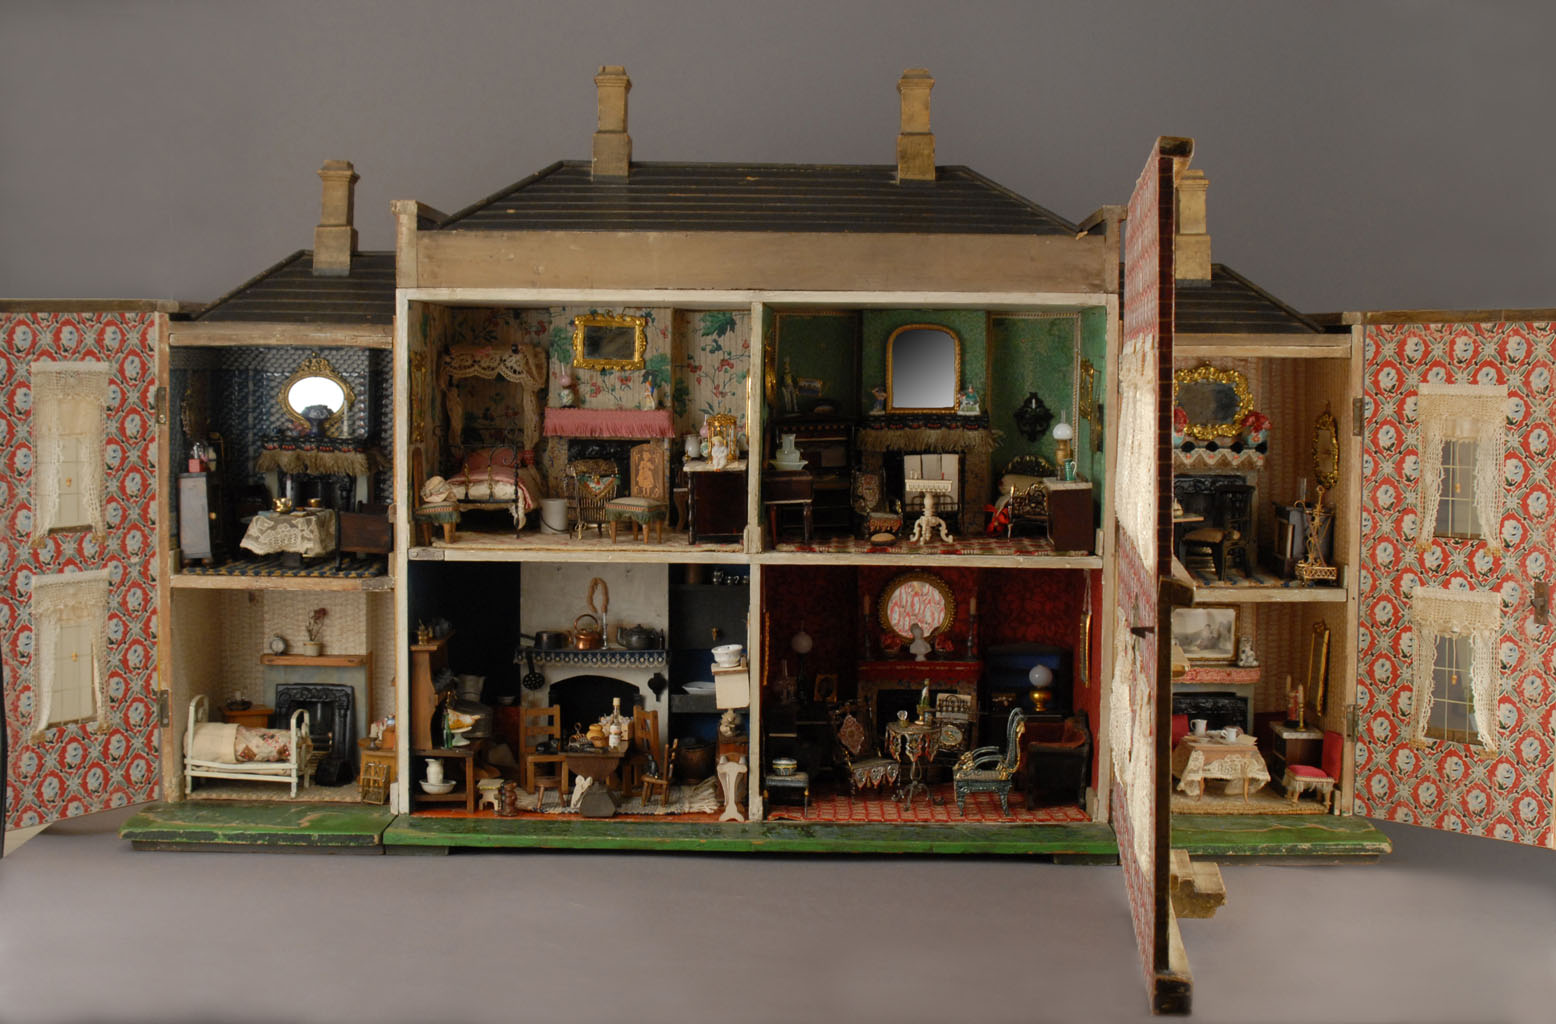 Living Little The Miniature World of Dollhouses Hannahs Treasures